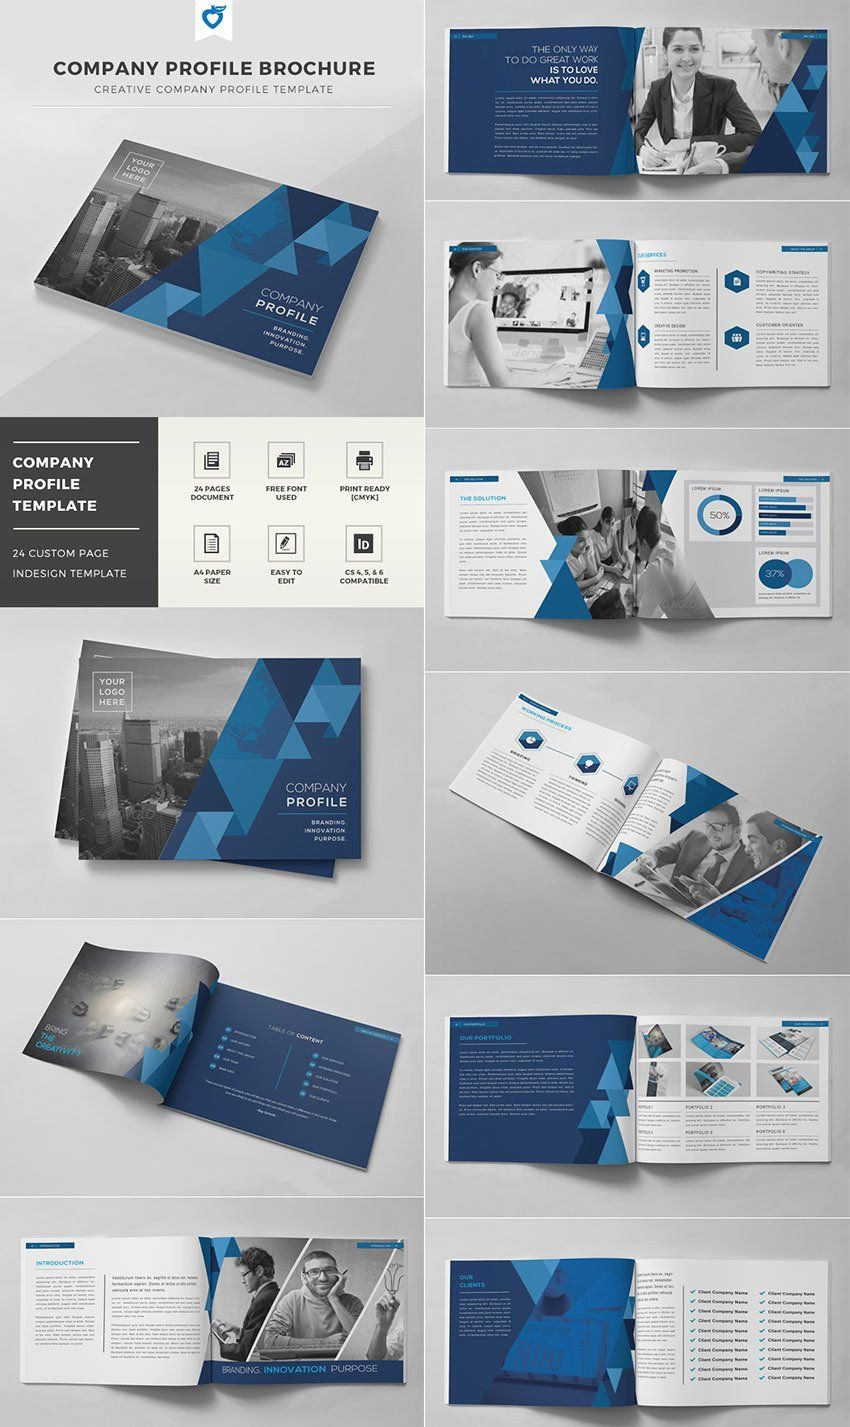 Indesign Brochure Template Free New 20 Best Indesign Brochure Templates For Creative Indesign Brochure Templates Company Profile Design Brochure Design Layout